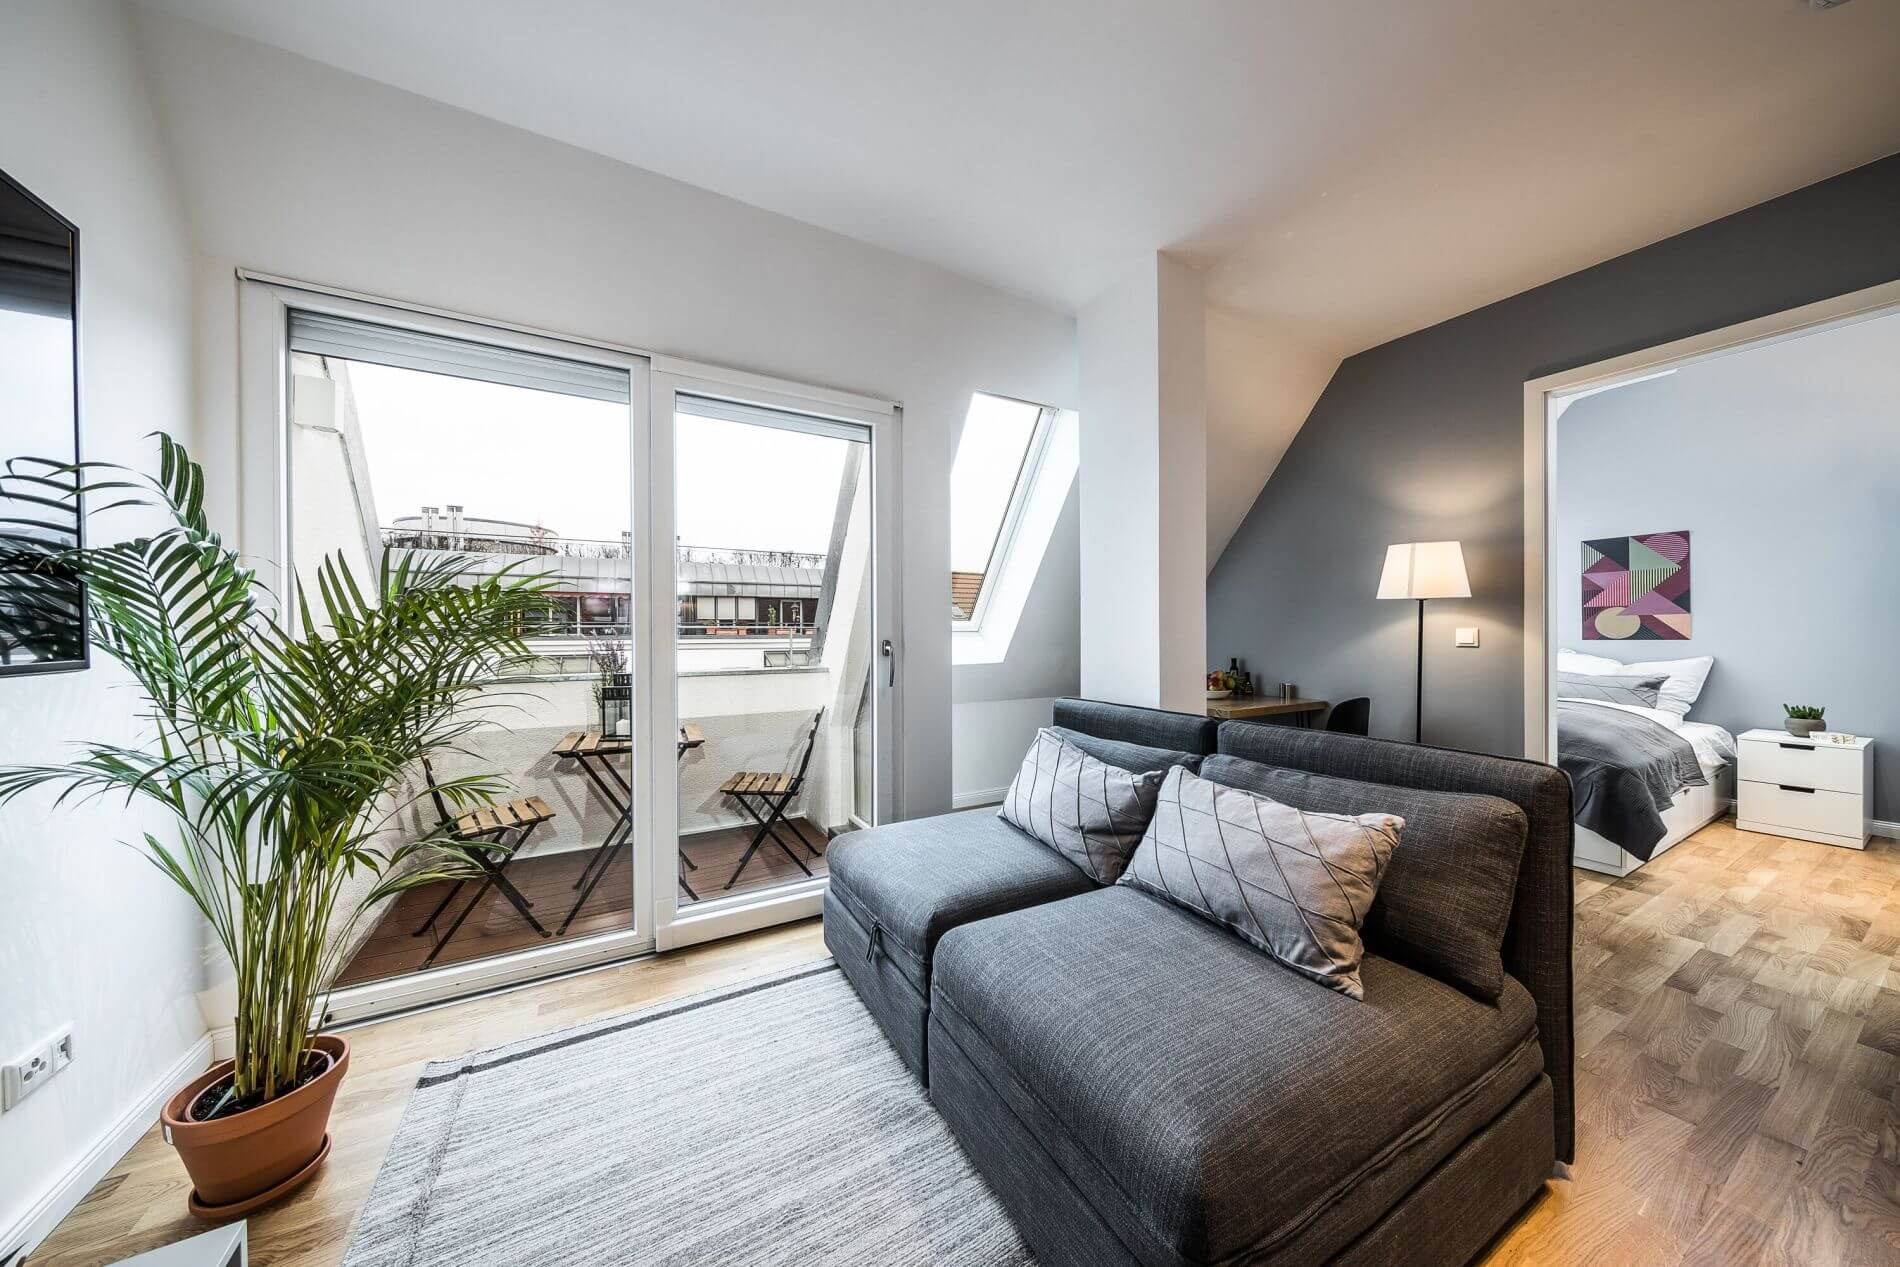 Furnished apartment with balcony for rent in Friedrichshain, Berlin